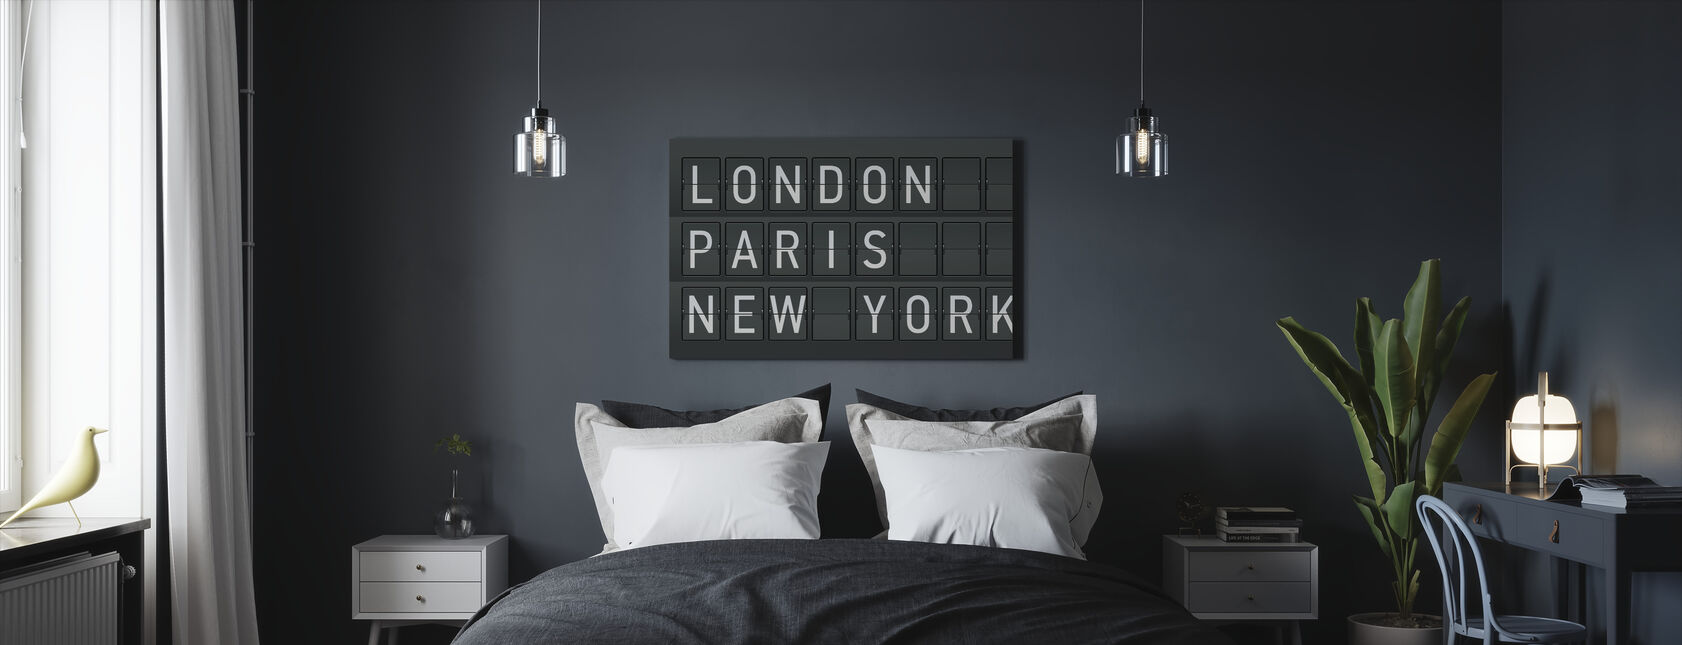 Londres - Paris - New York - Impression sur toile - Chambre